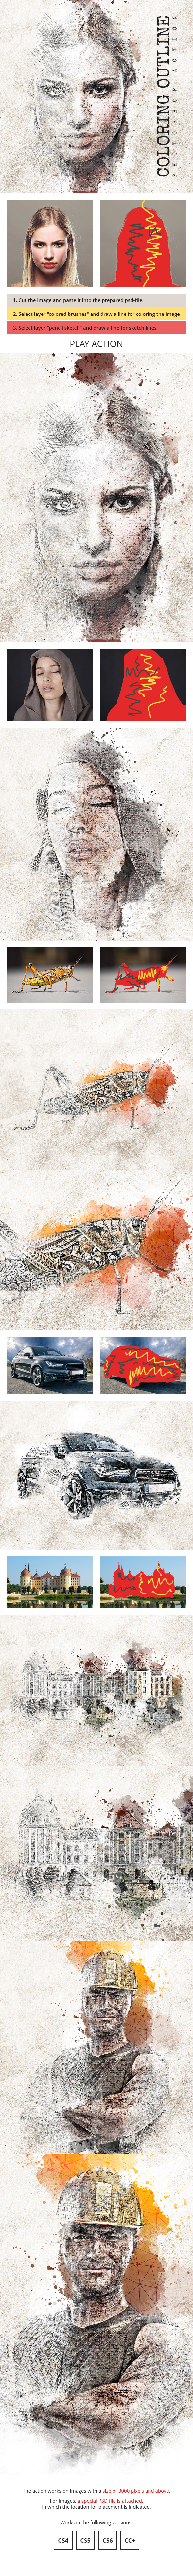 Coloring Outline Photoshop Action - Photo Effects Actions